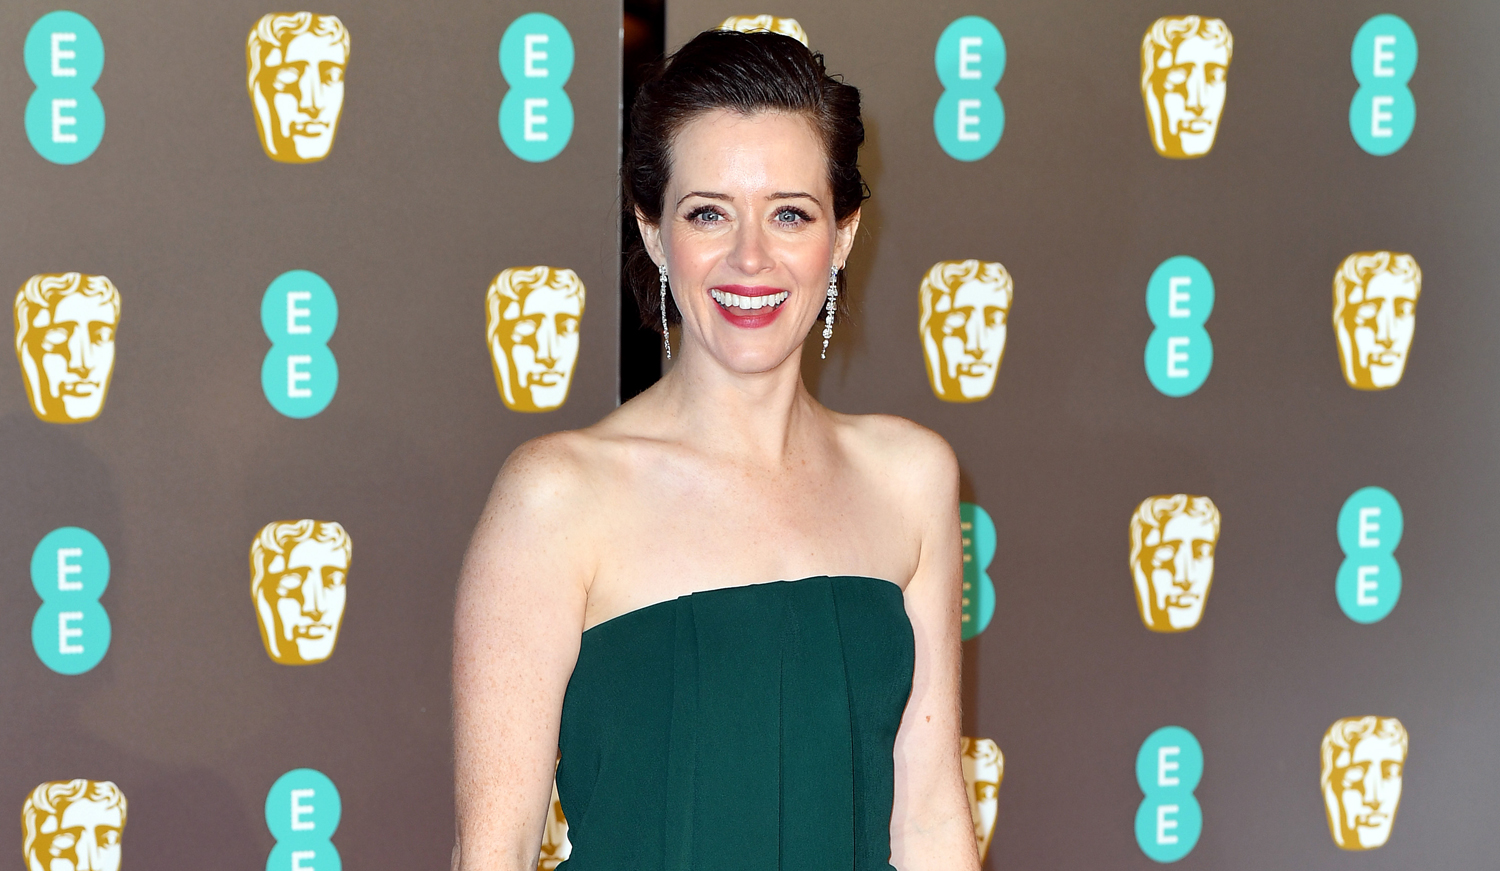 Baftas 2019: Claire Foy At BAFTAs 2019: 'I'm Hungry!'